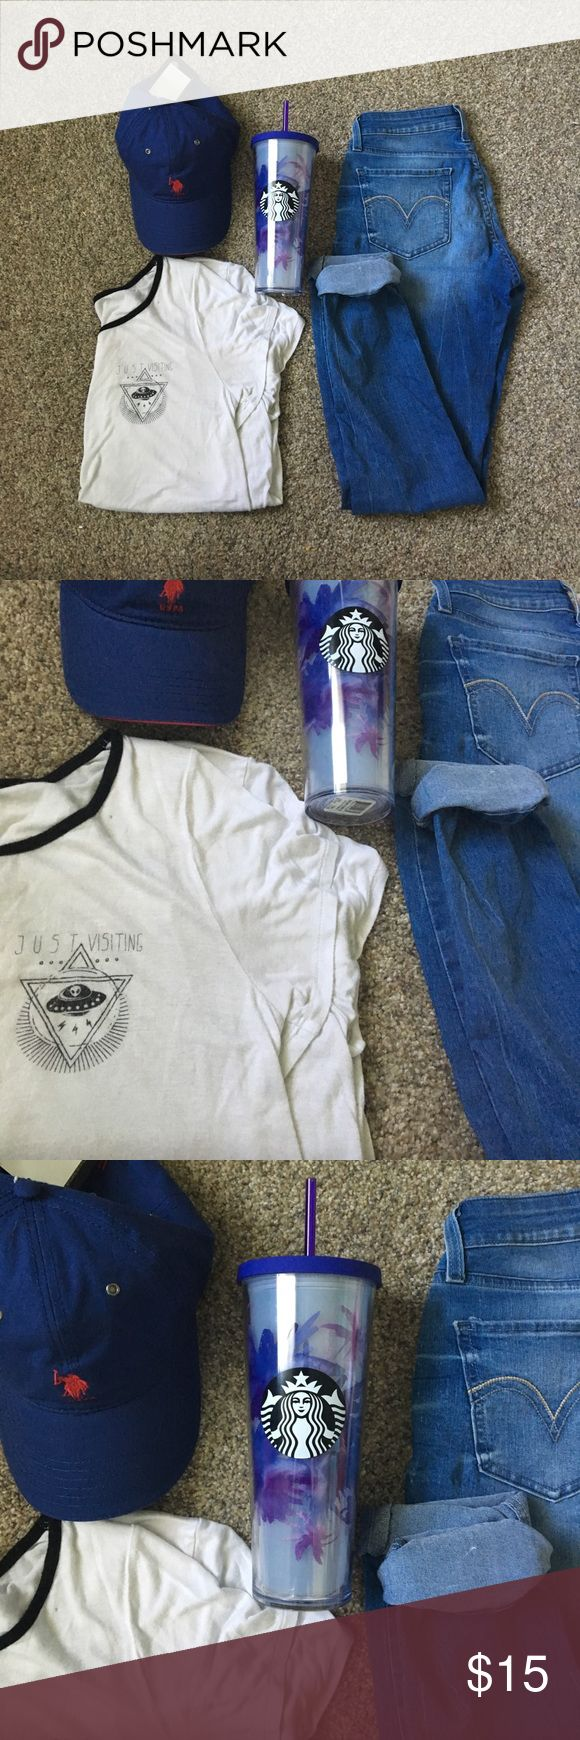 "Palm tree 2017 Starbucks Tumblr NWT Chill and relax with a good cup of coffee in your NWT Starbucks 2017 Tumblr palm tree purple. Match along with high waisted Levi blue skinny jeans and a basic white Zumiez ""just visiting"" aliens tee and on top of that pretty head of yours a new with tags navy blue U.S. Polo baseball cap! ☀️☀️☀️ Size 18oz ? Its bigger than my Swell so i am basing logic off that. Starbucks Accessories"